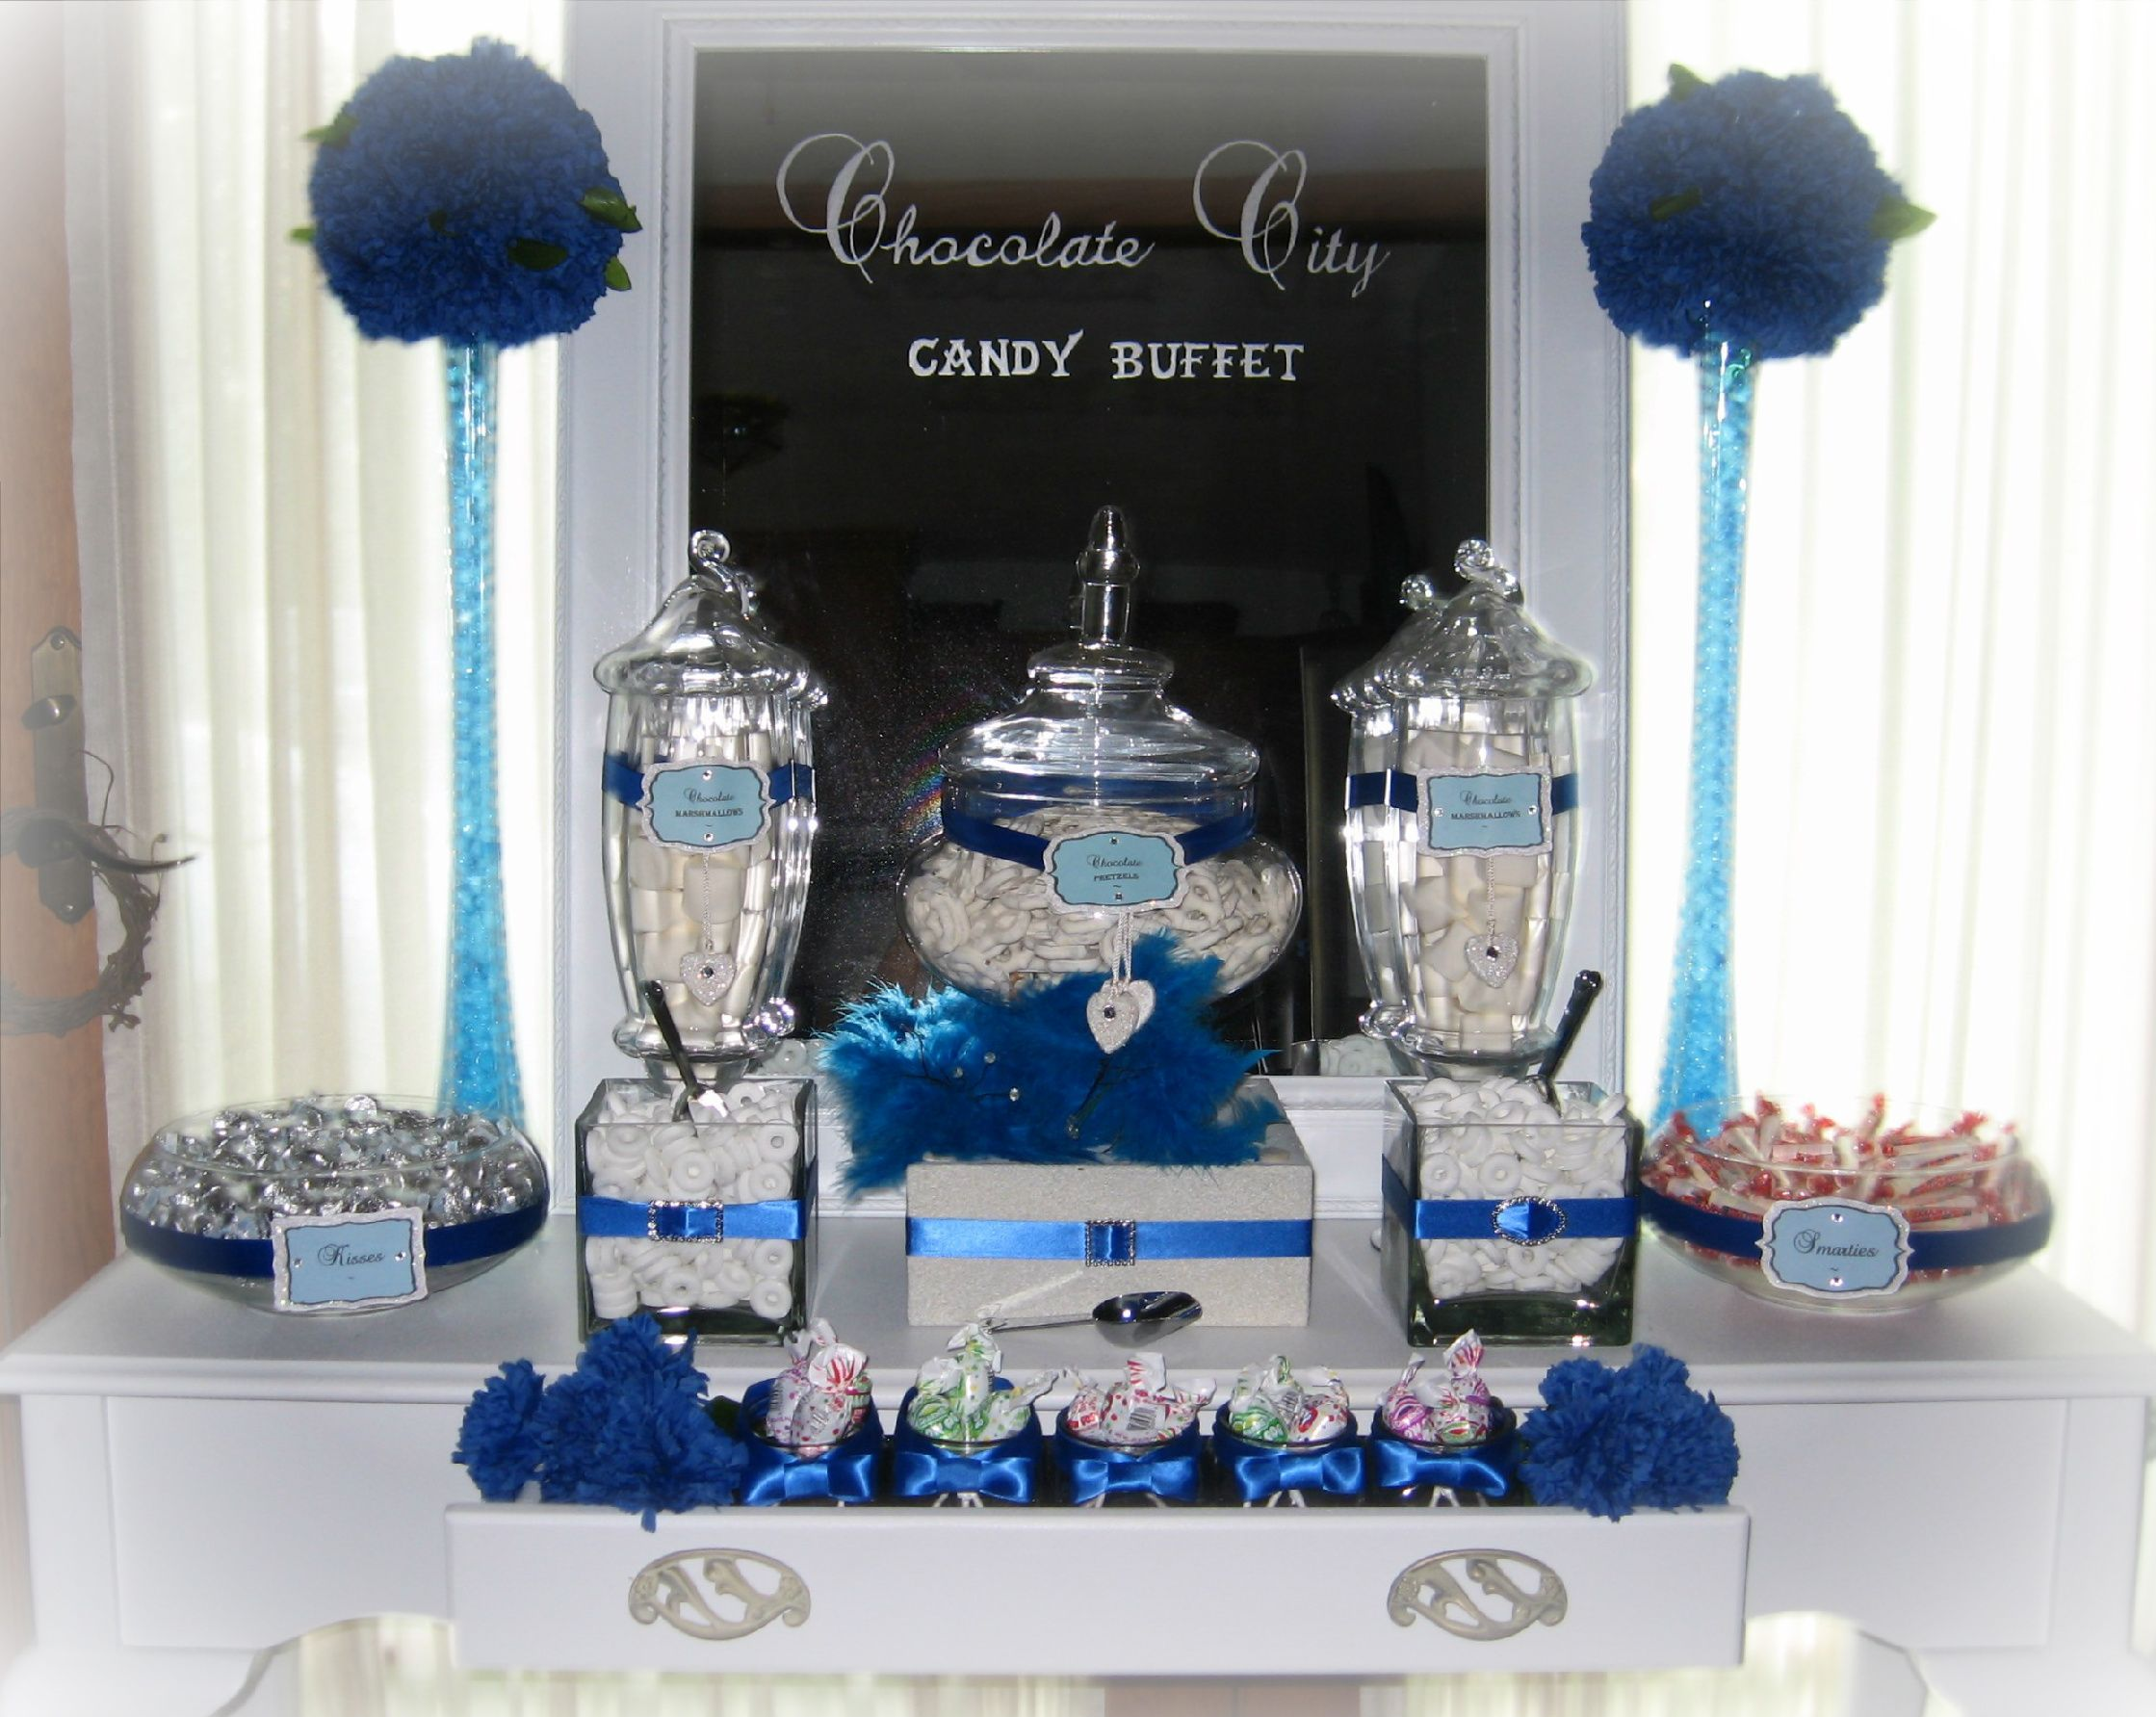 wedding shower candy buffet ideas%0A blue and white candy buffet tables   Blue  Silver and White Wedding candy  table   Candy Tables   engagement party   Pinterest   Wedding candy table